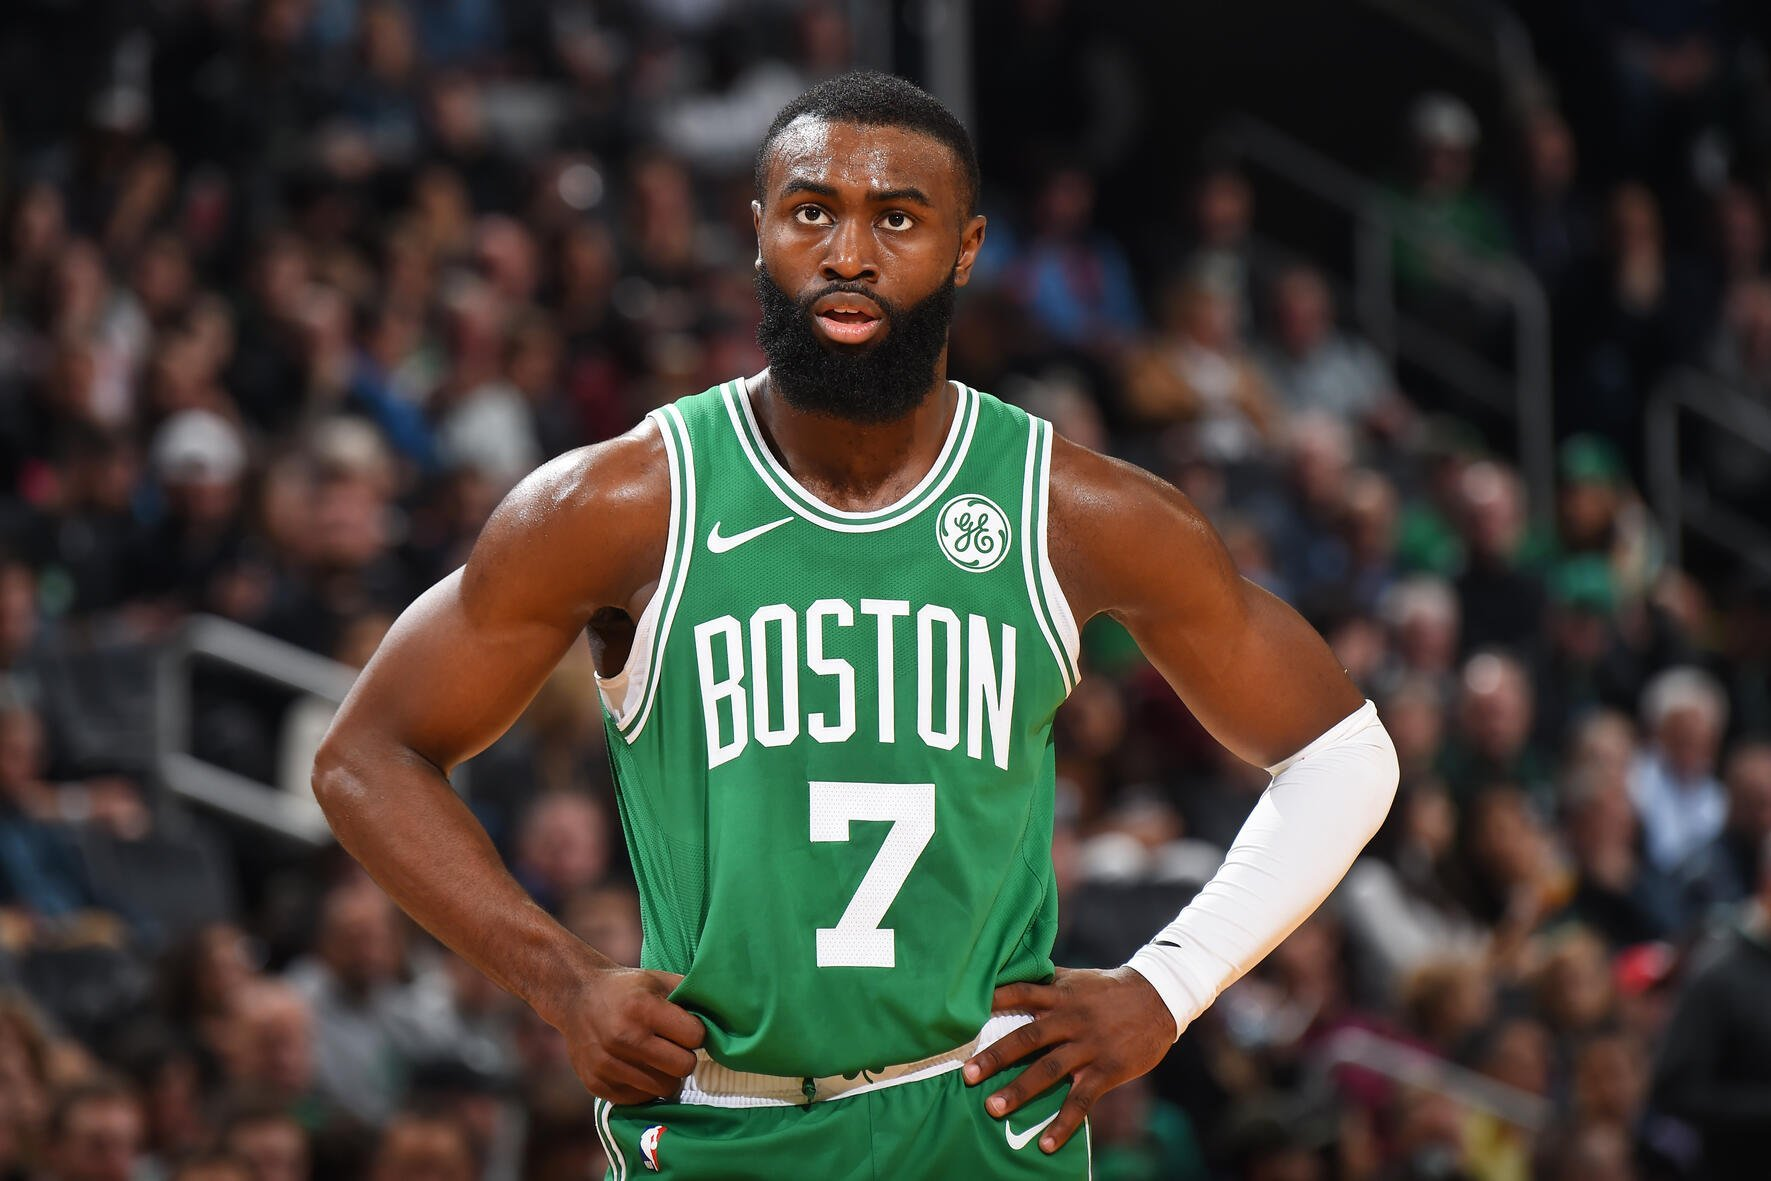 BOSTON, MA - OCTOBER 25: Jaylen Brown #7 of the Boston Celtics looks on during a game against the Toronto Raptors on October 25, 2019 at the TD Garden in Boston, Massachusetts.